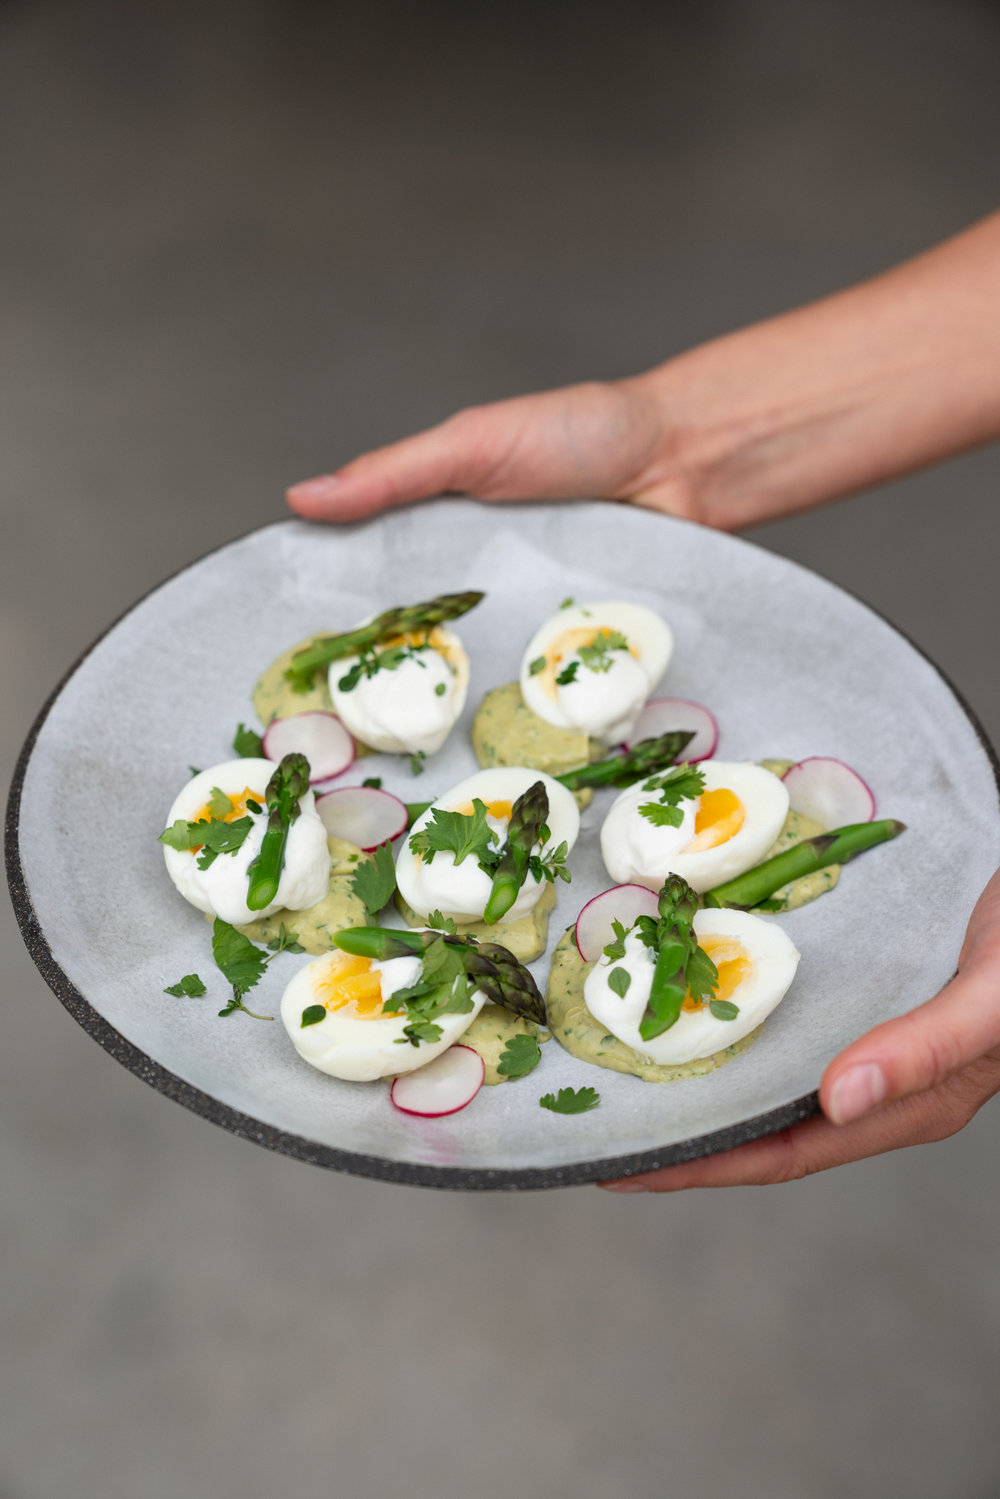 boiled_eggs_with_avocado_anchovy_cream-3.jpg